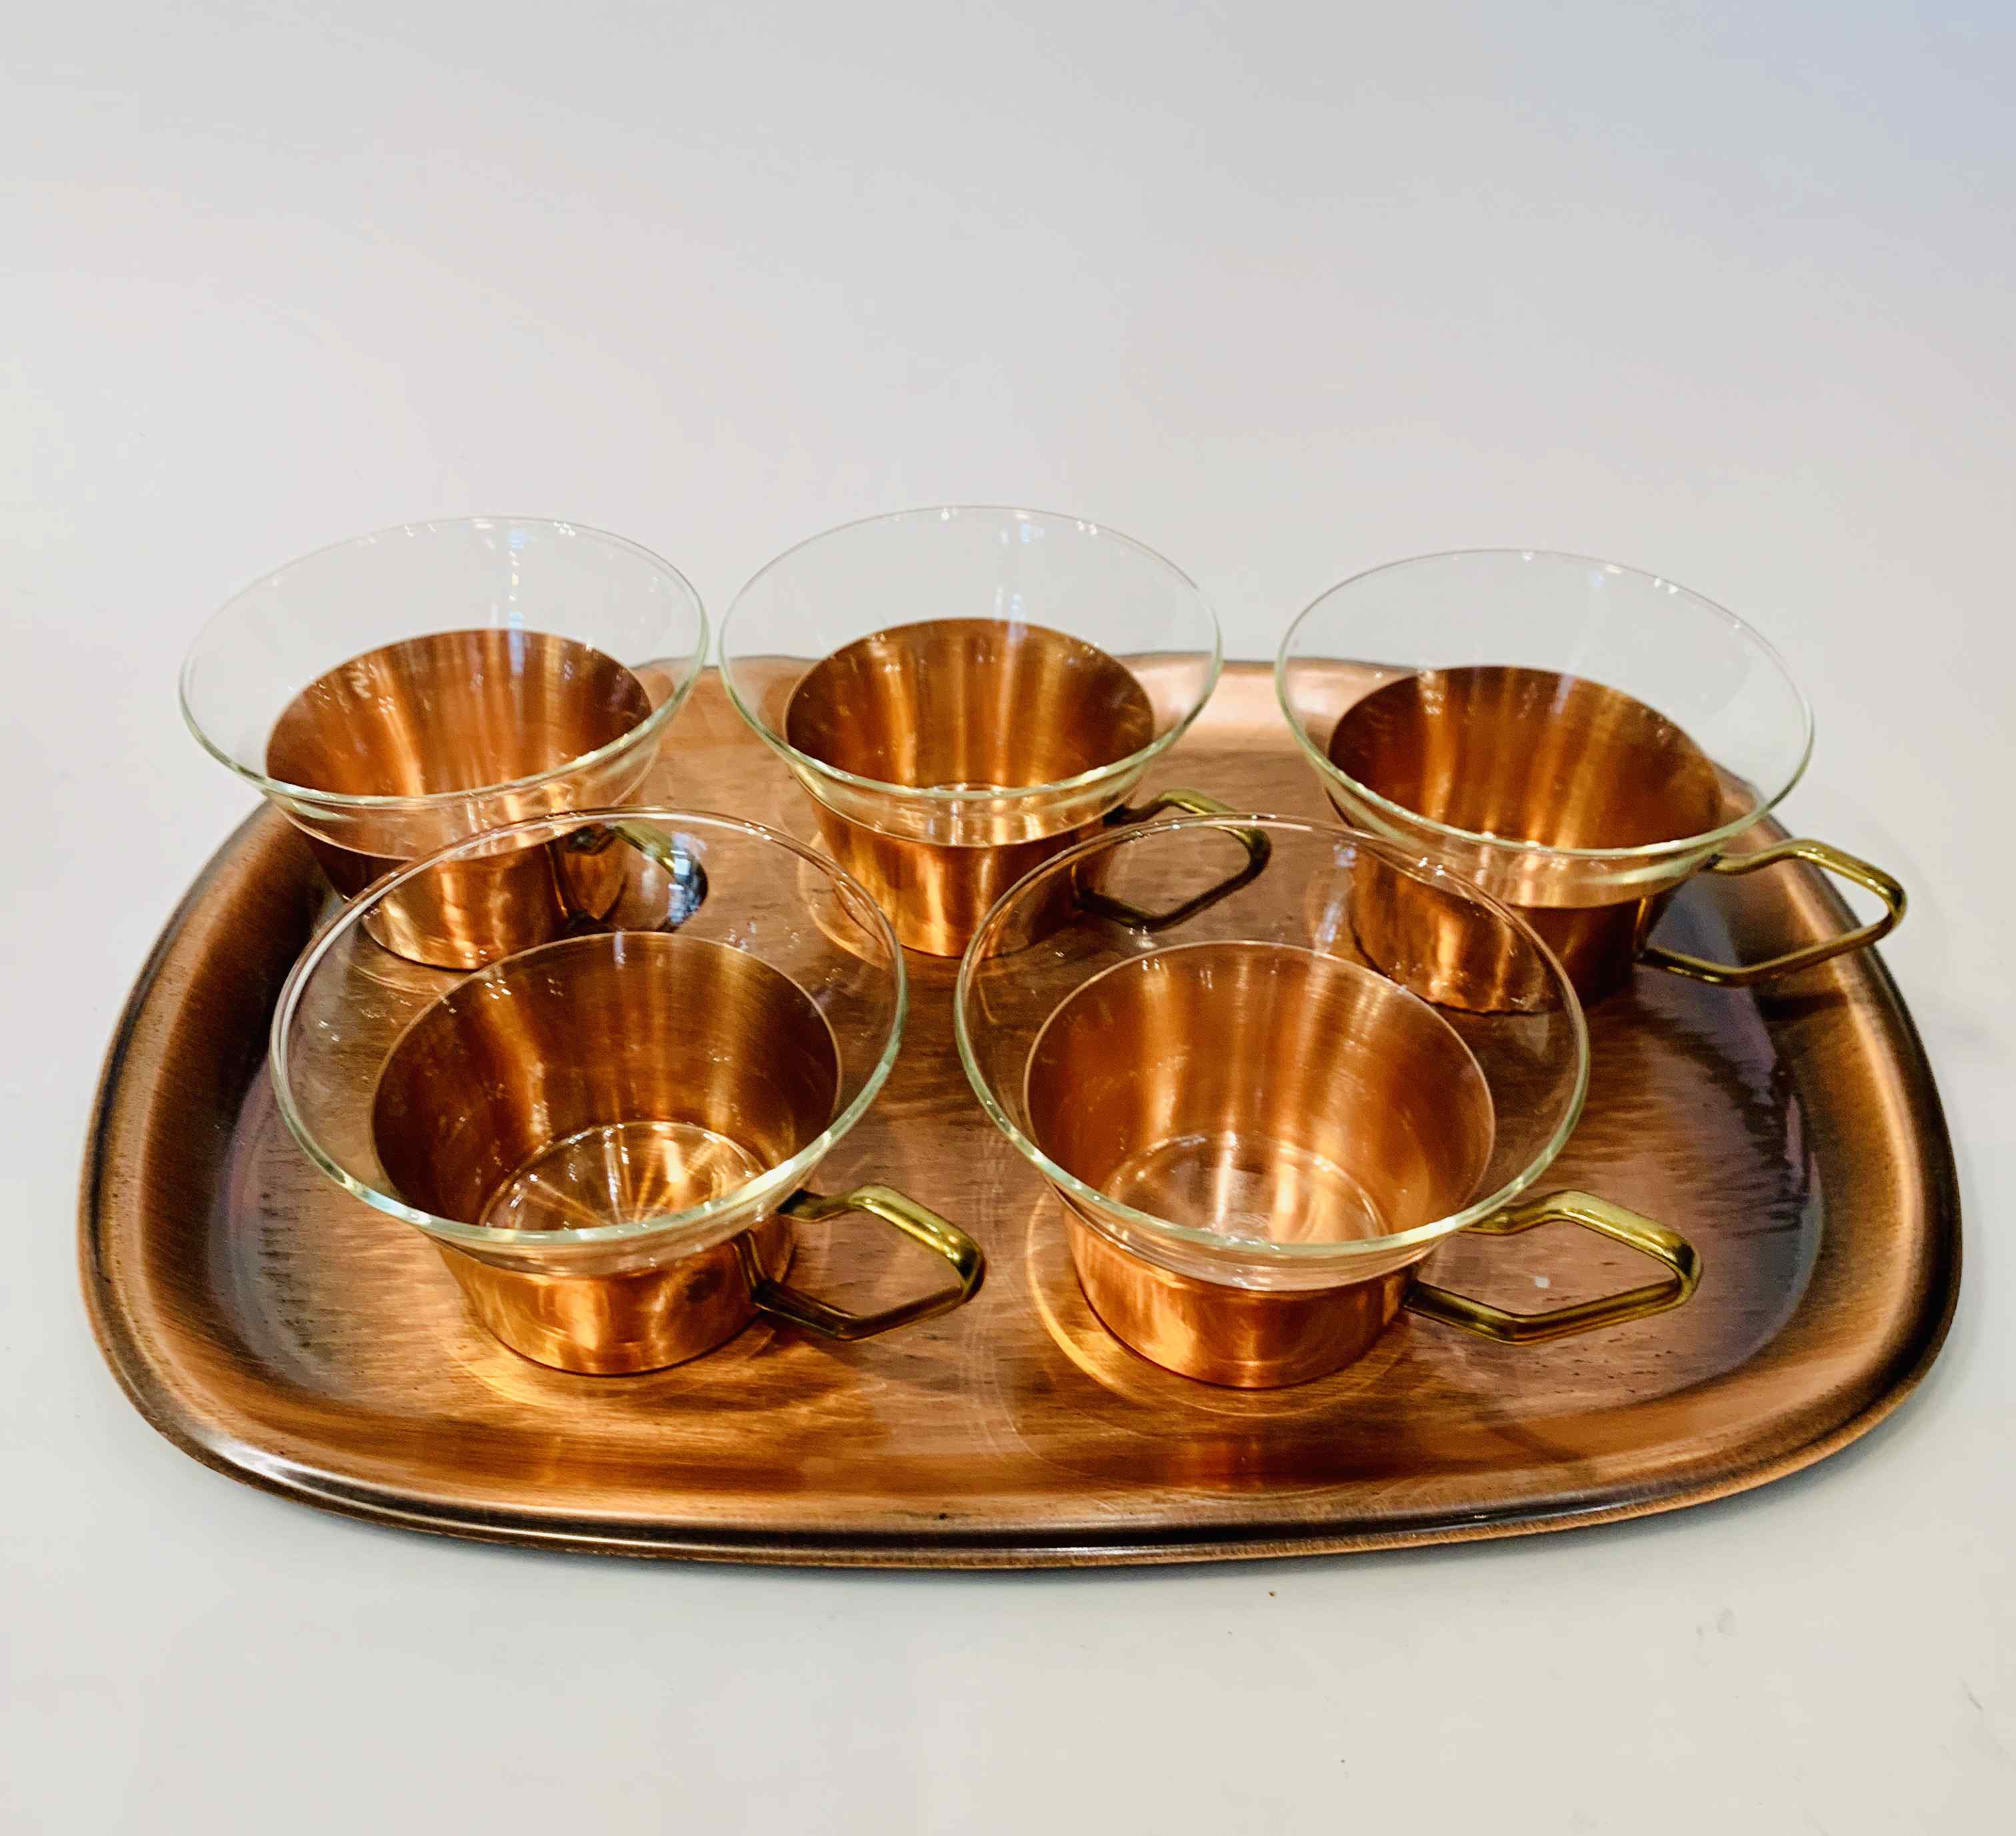 Vintage Copper & Glass Teacups with a Tray